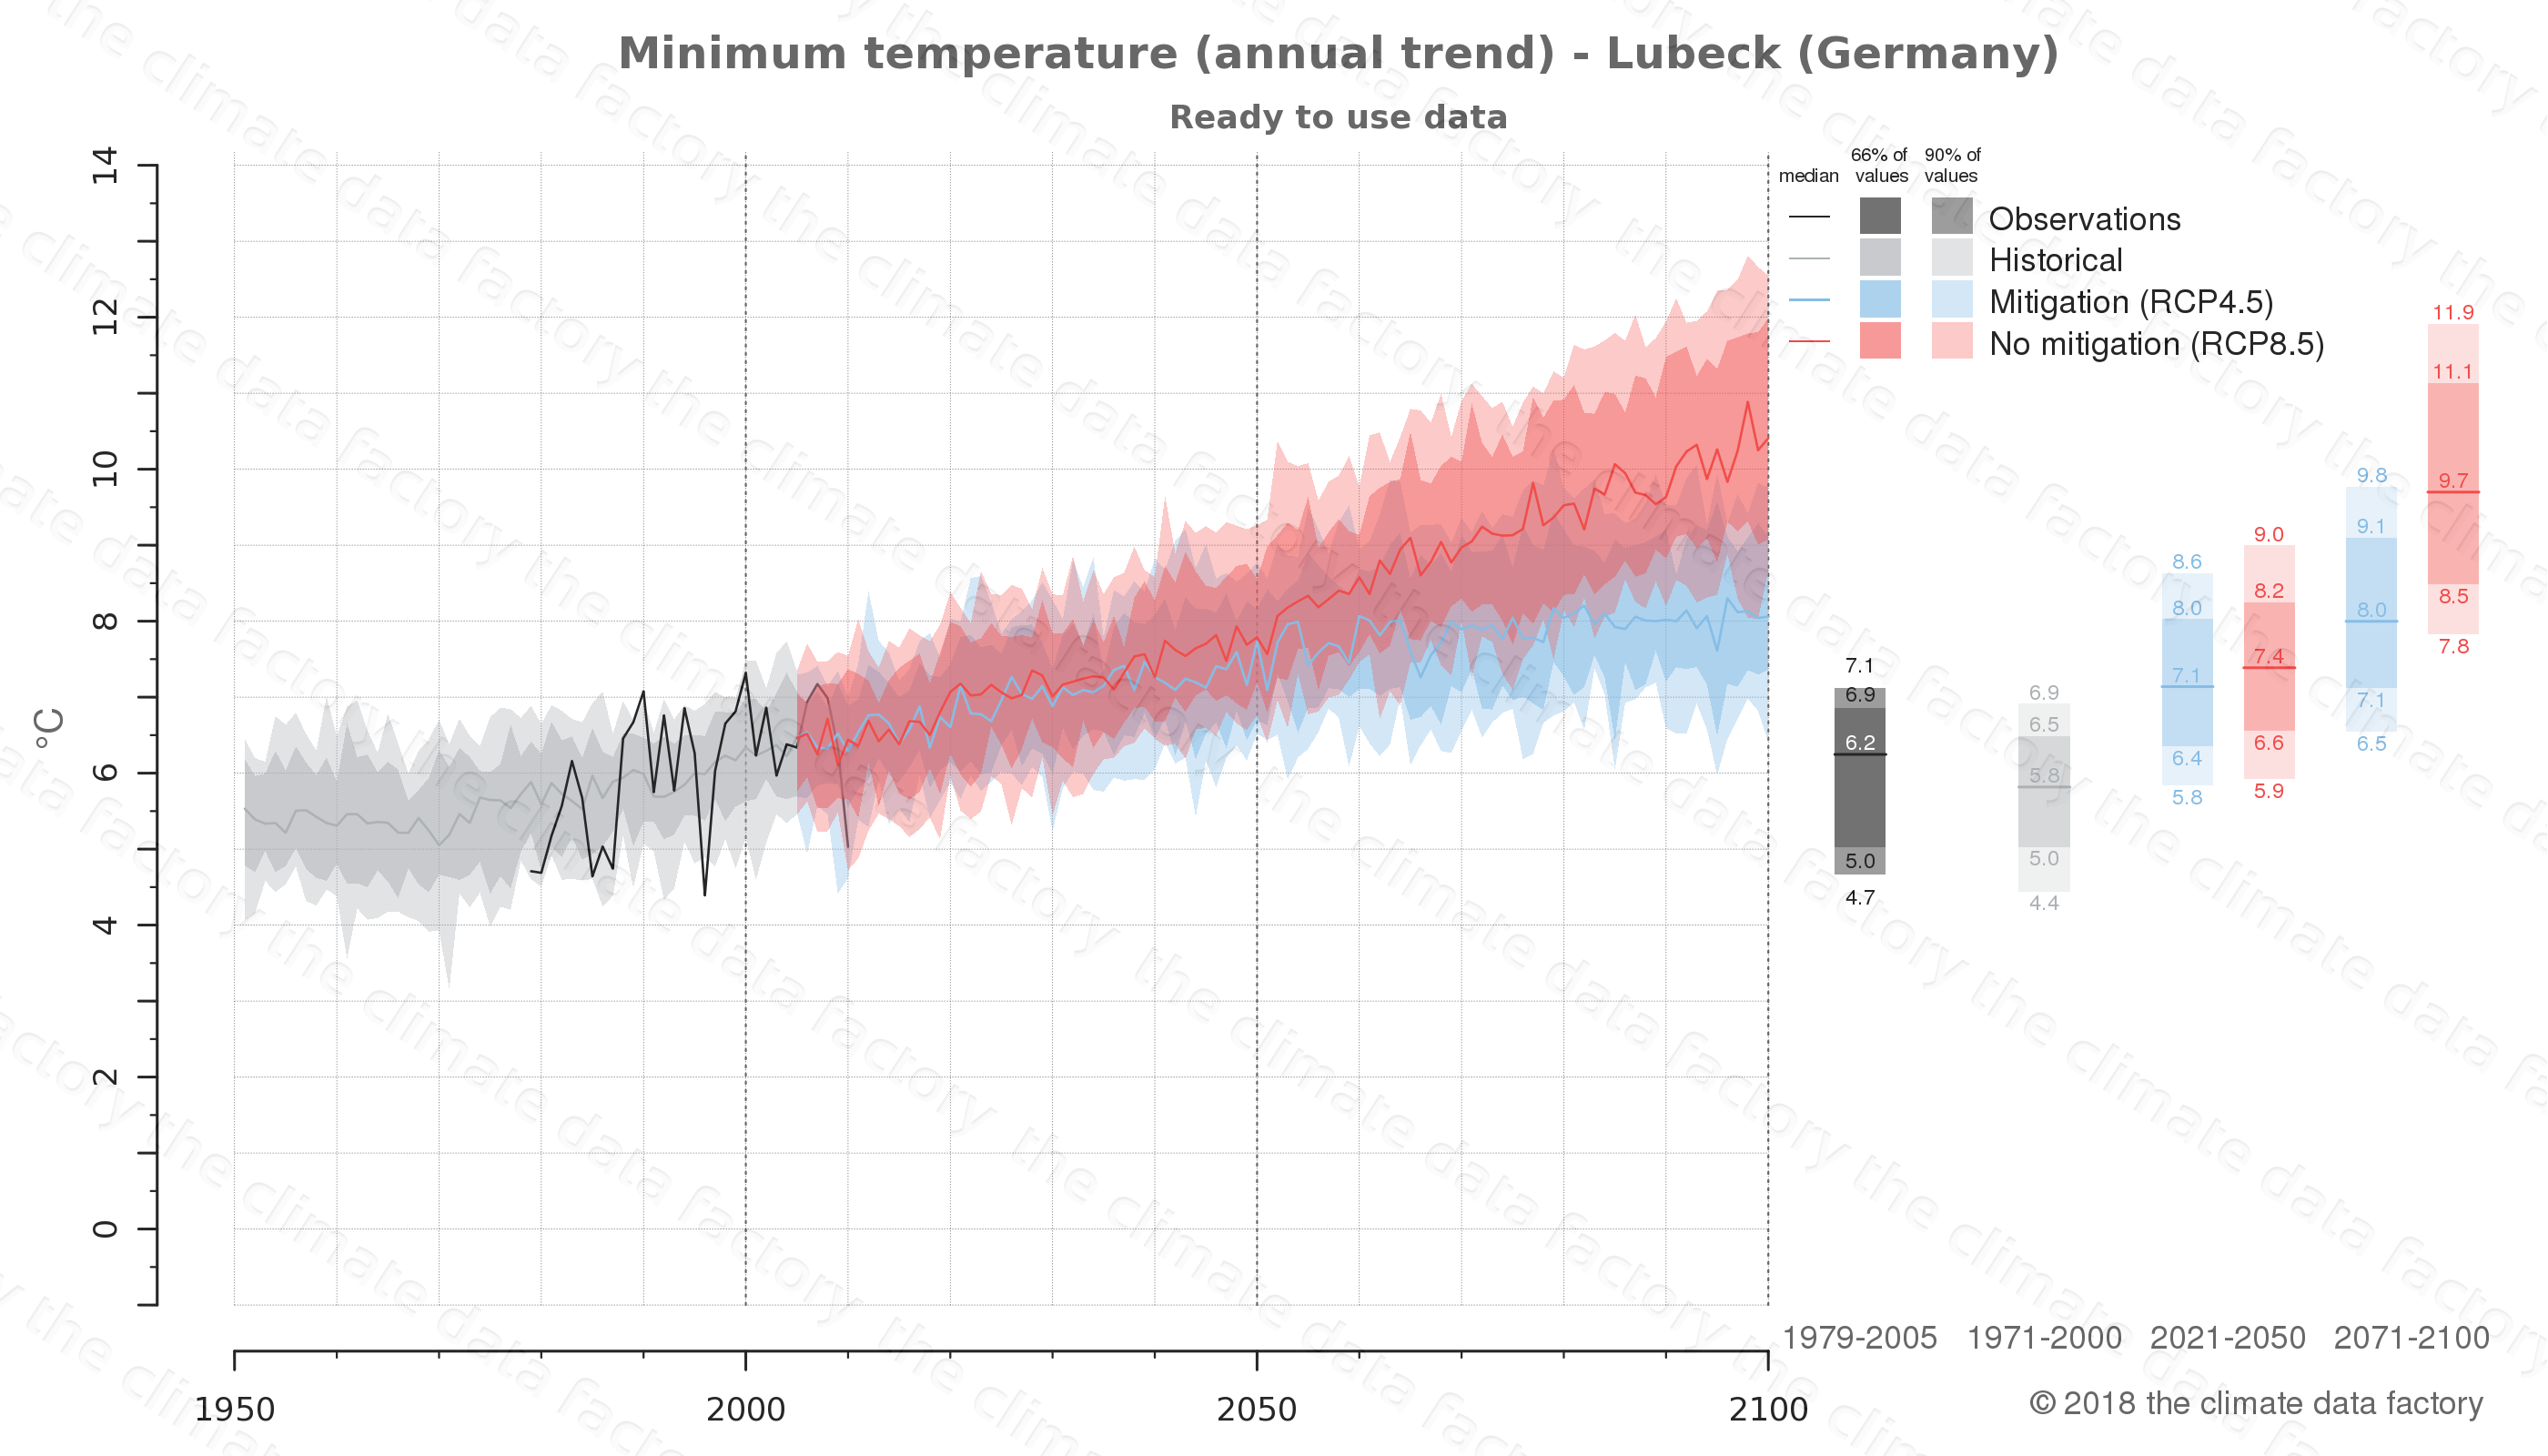 climate change data policy adaptation climate graph city data minimum-temperature lubeck germany